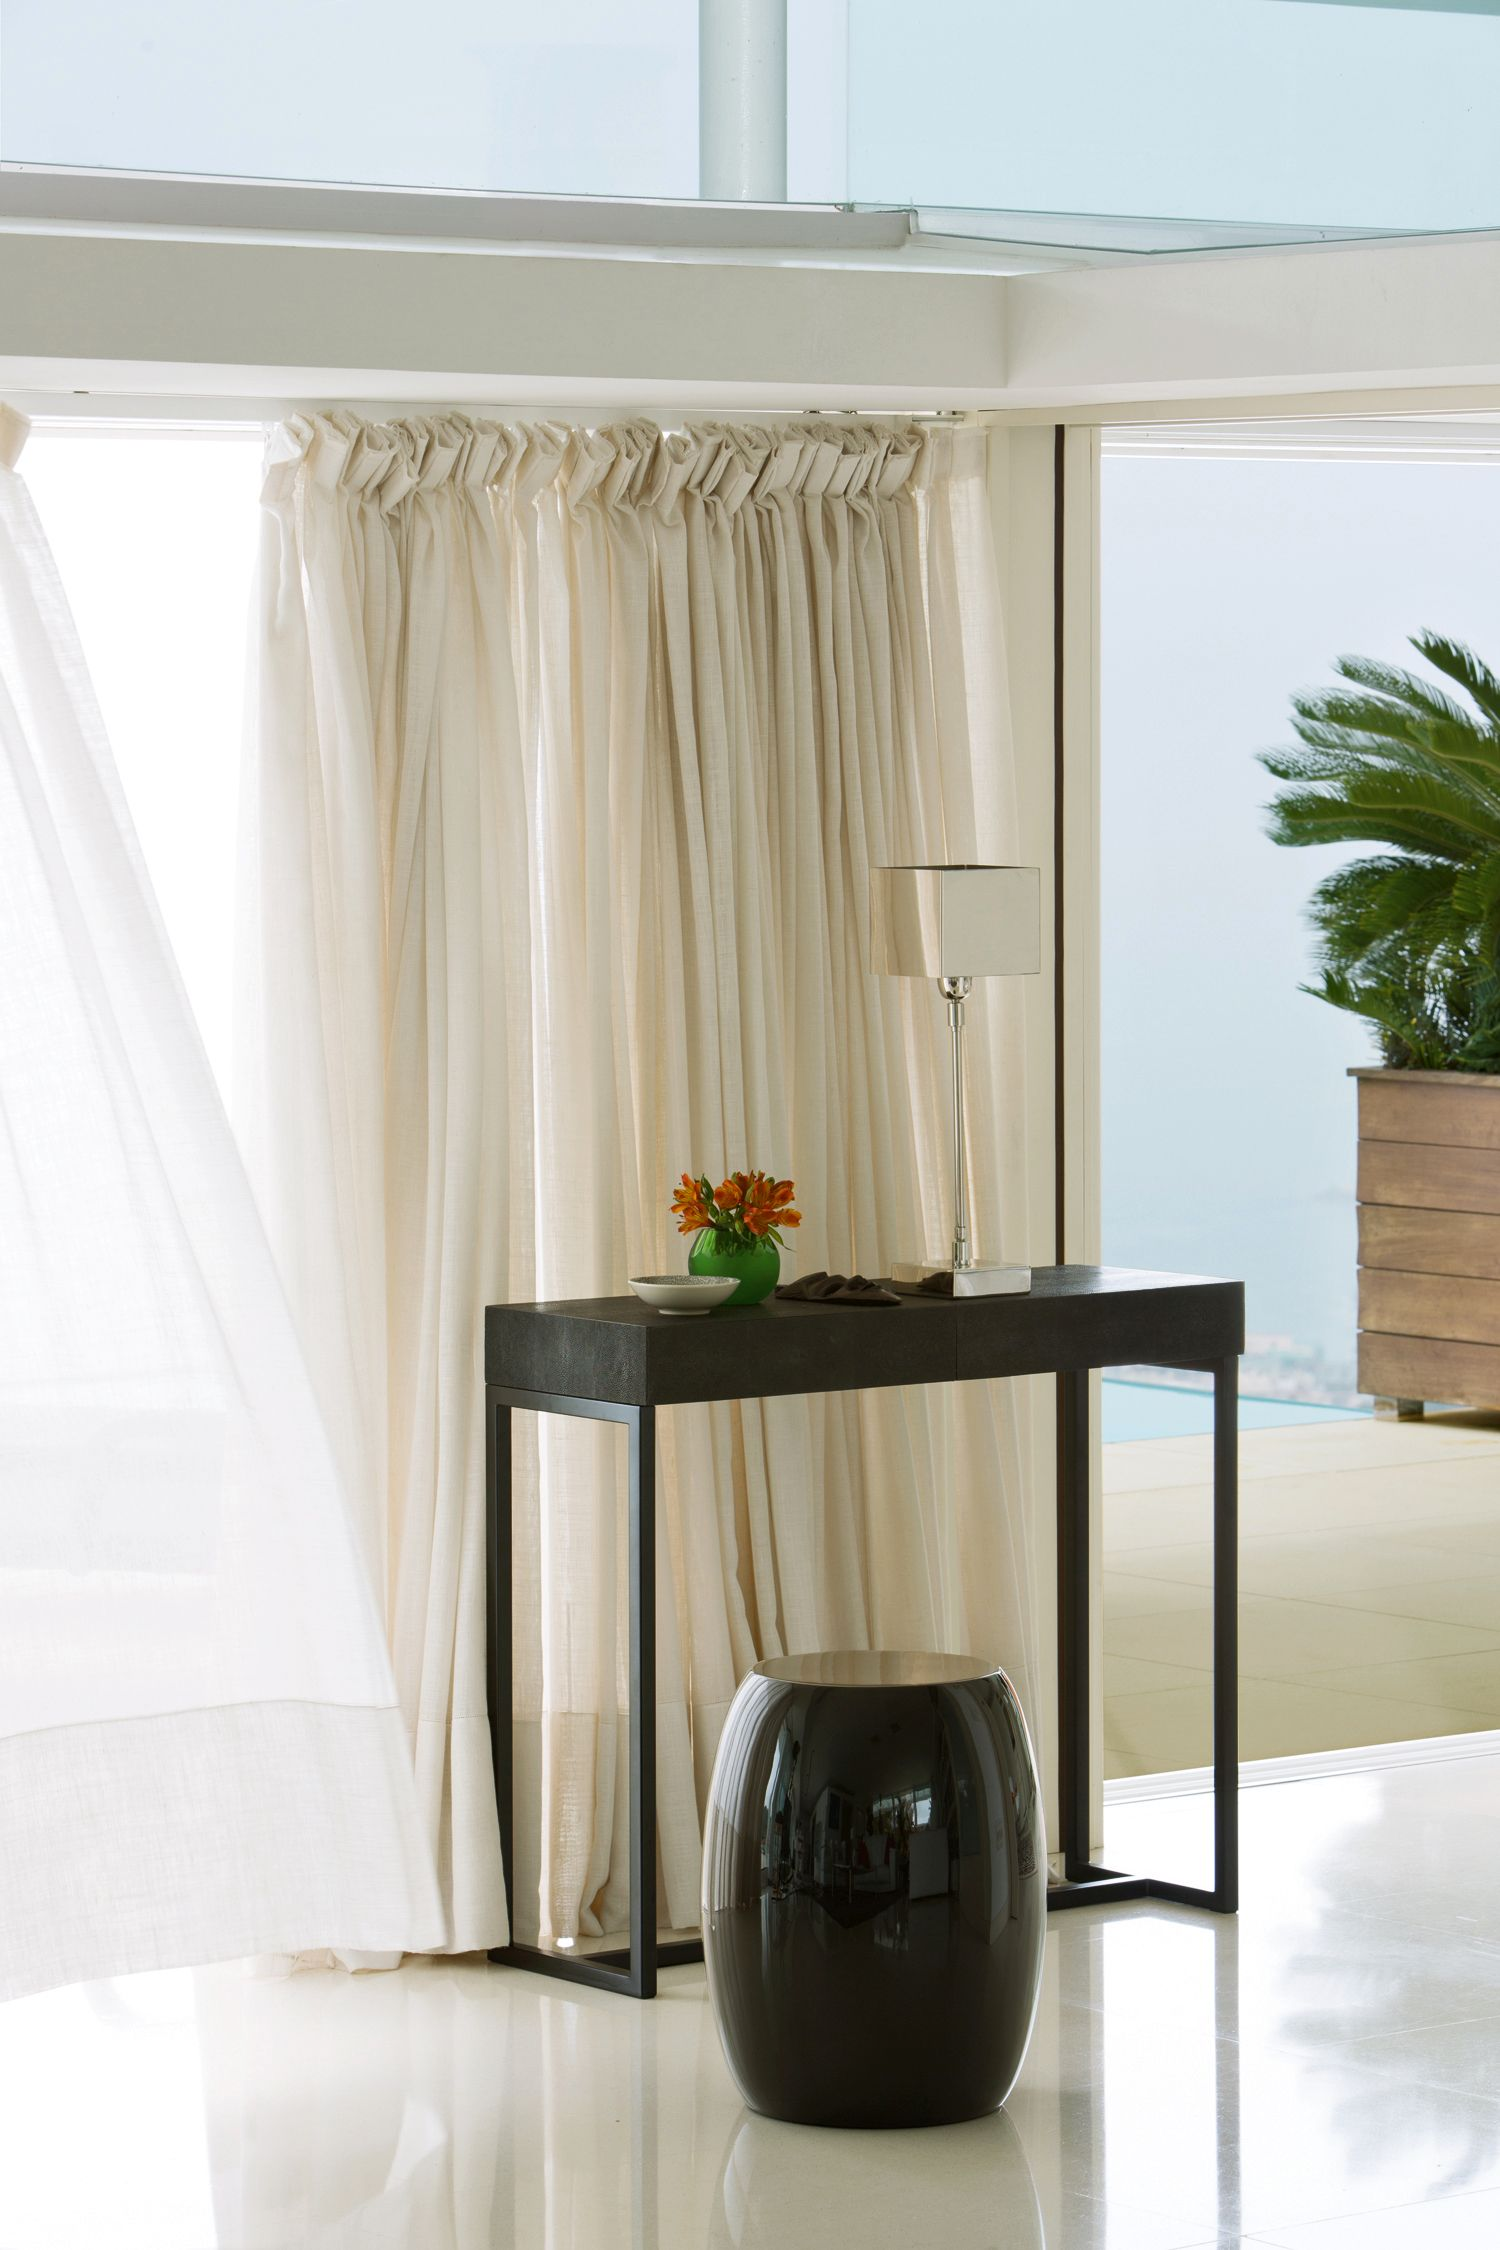 lambert keiko hocker chinalack exklusives wohndesign. Black Bedroom Furniture Sets. Home Design Ideas